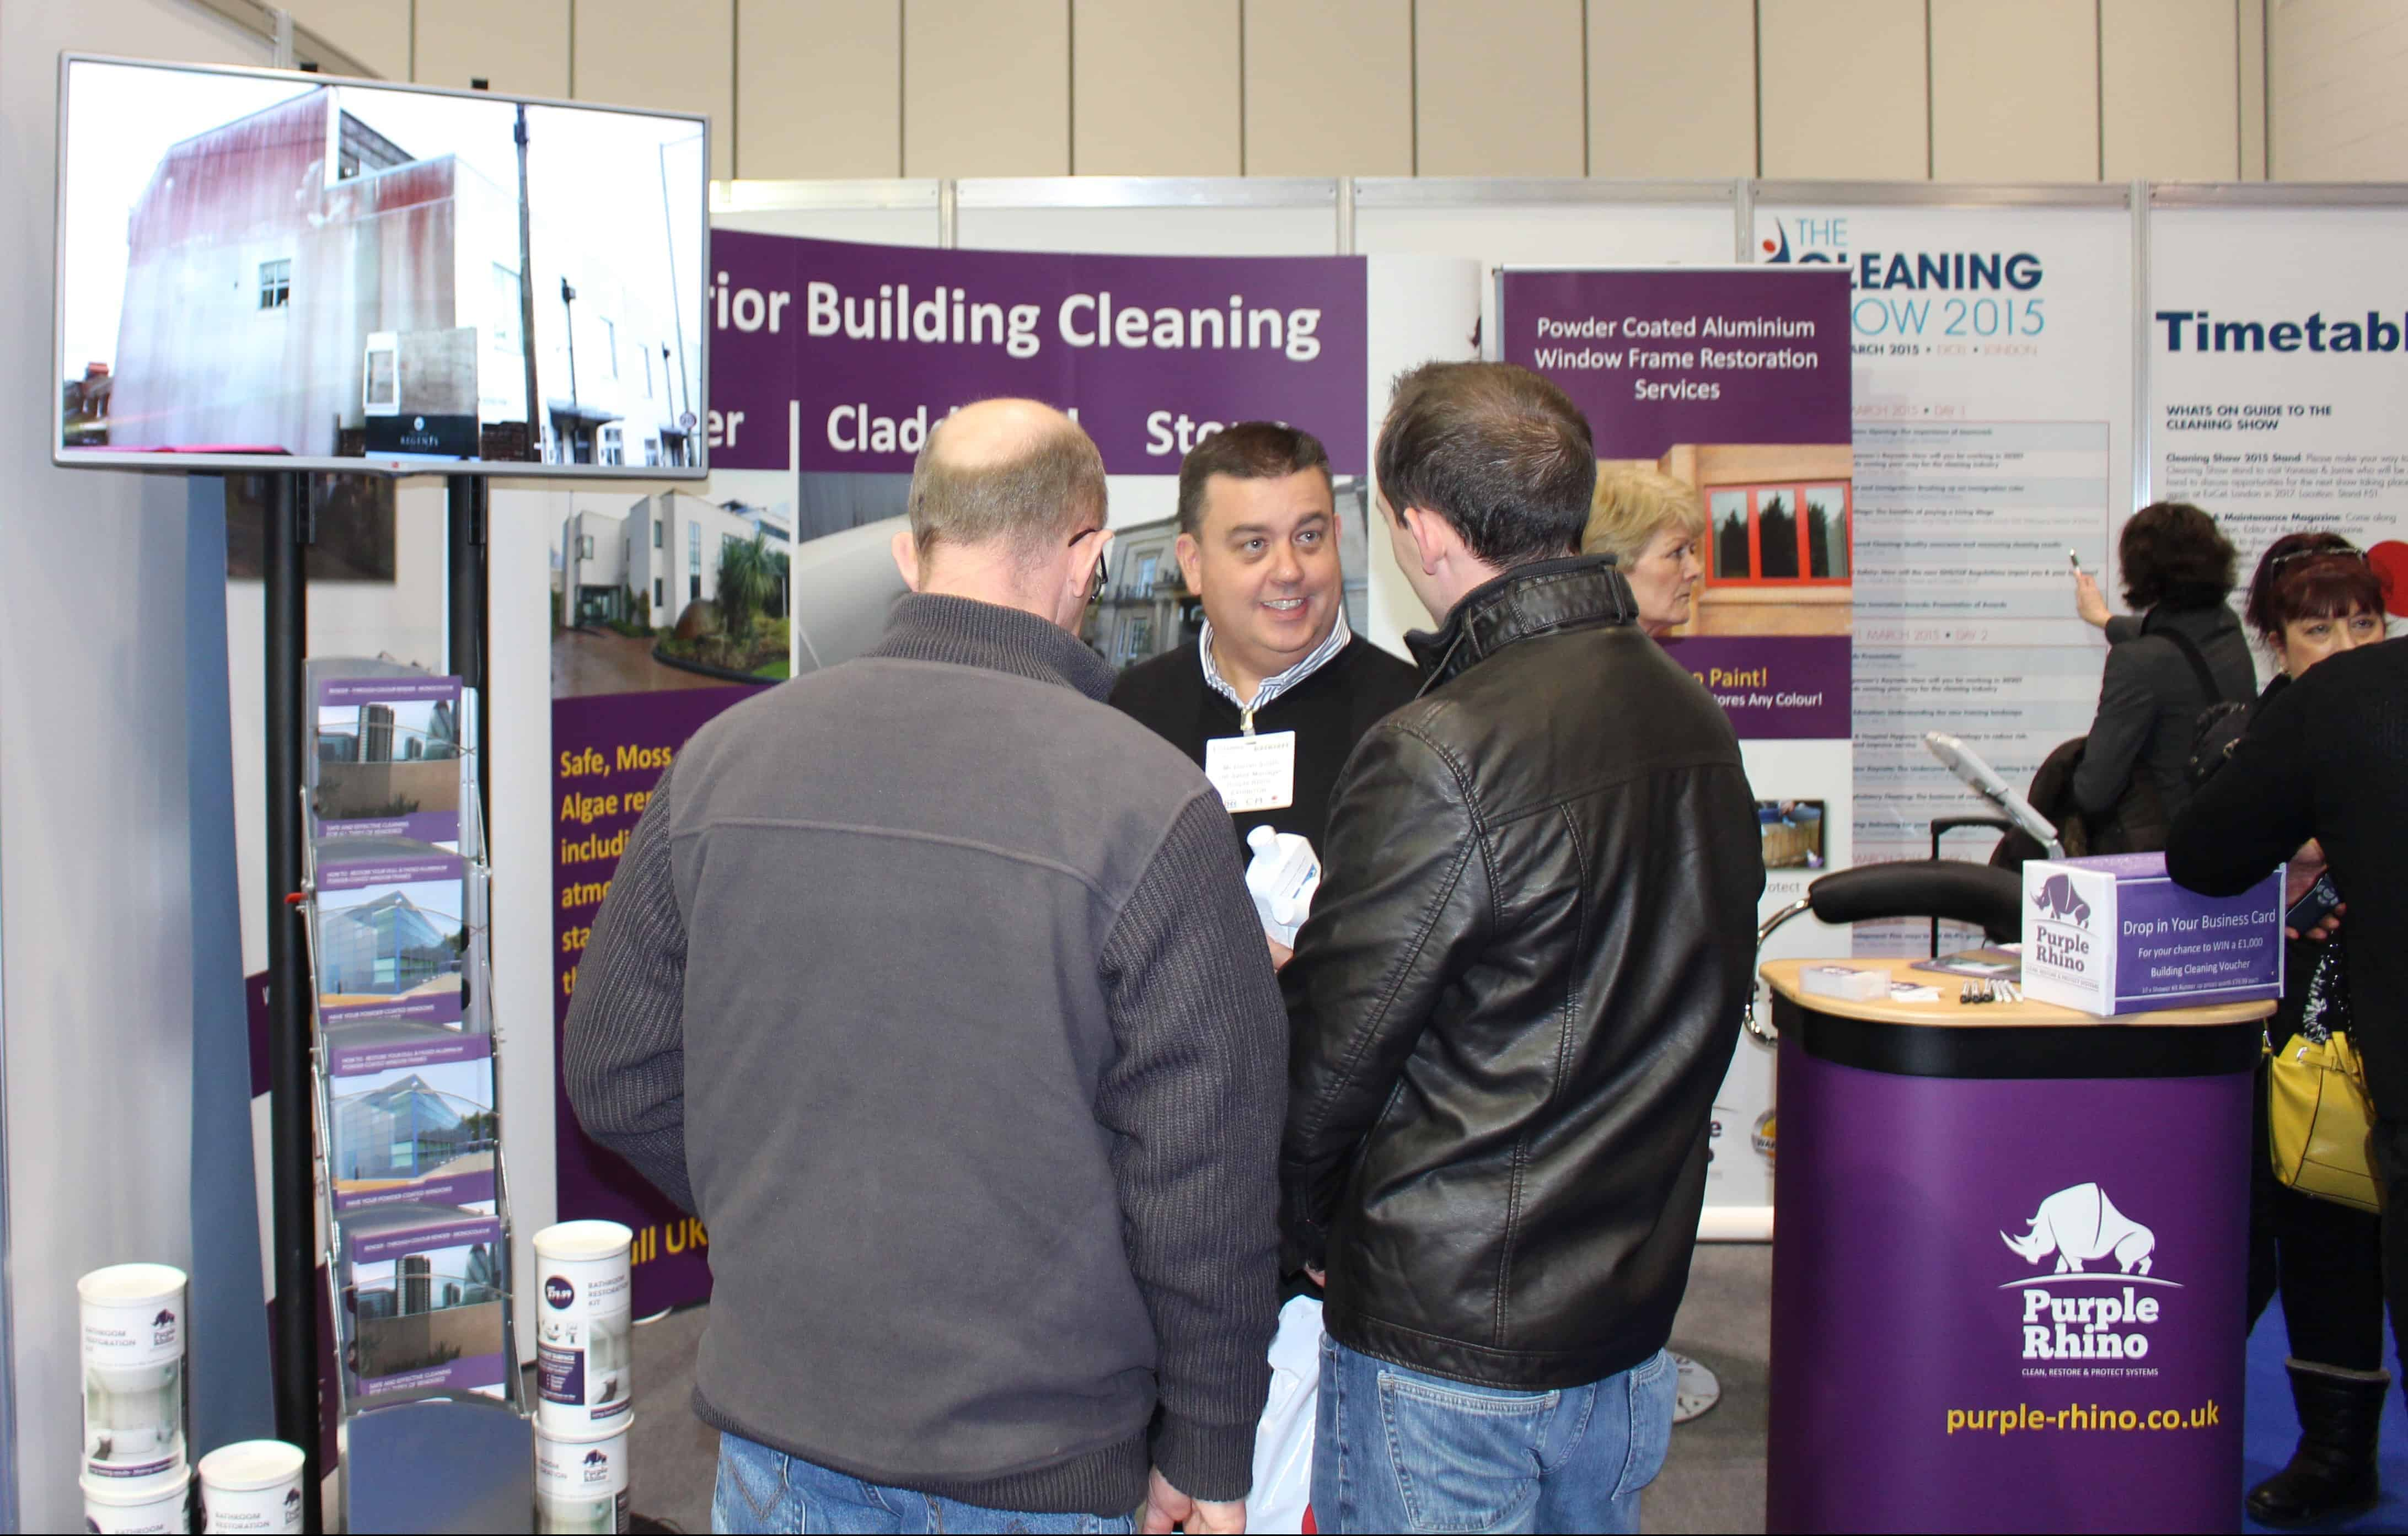 The Cleaning Show, London